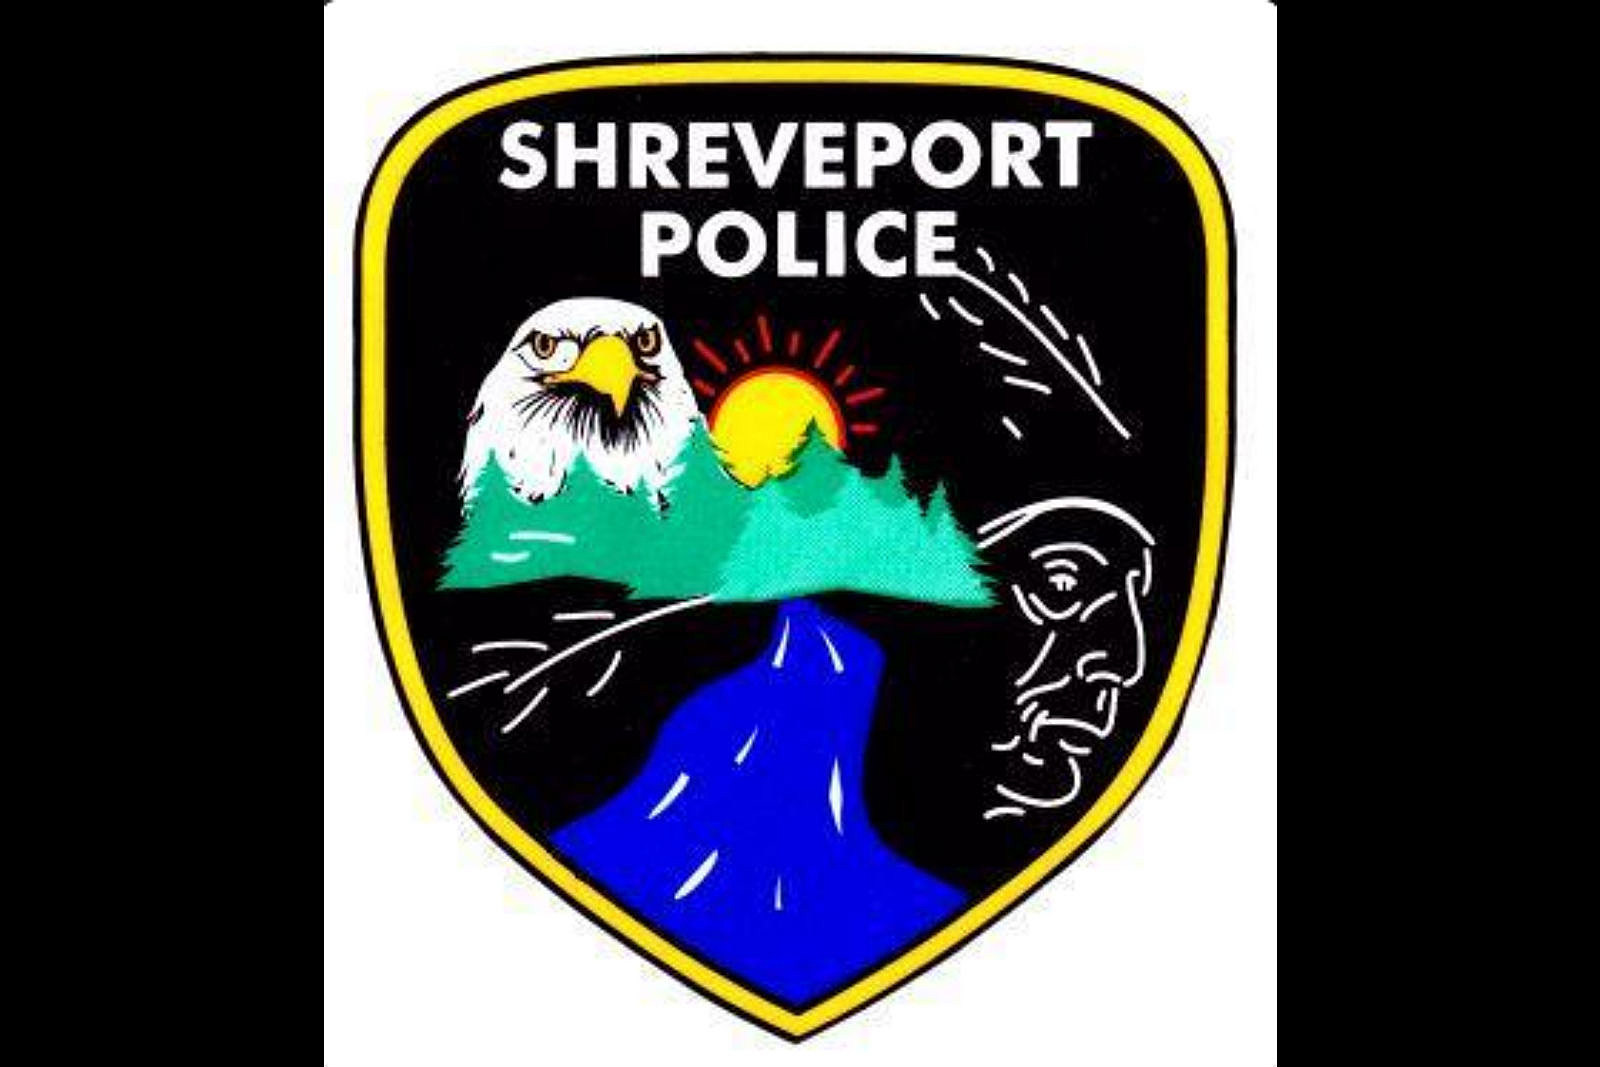 Shreveport Police Department Badge Edited